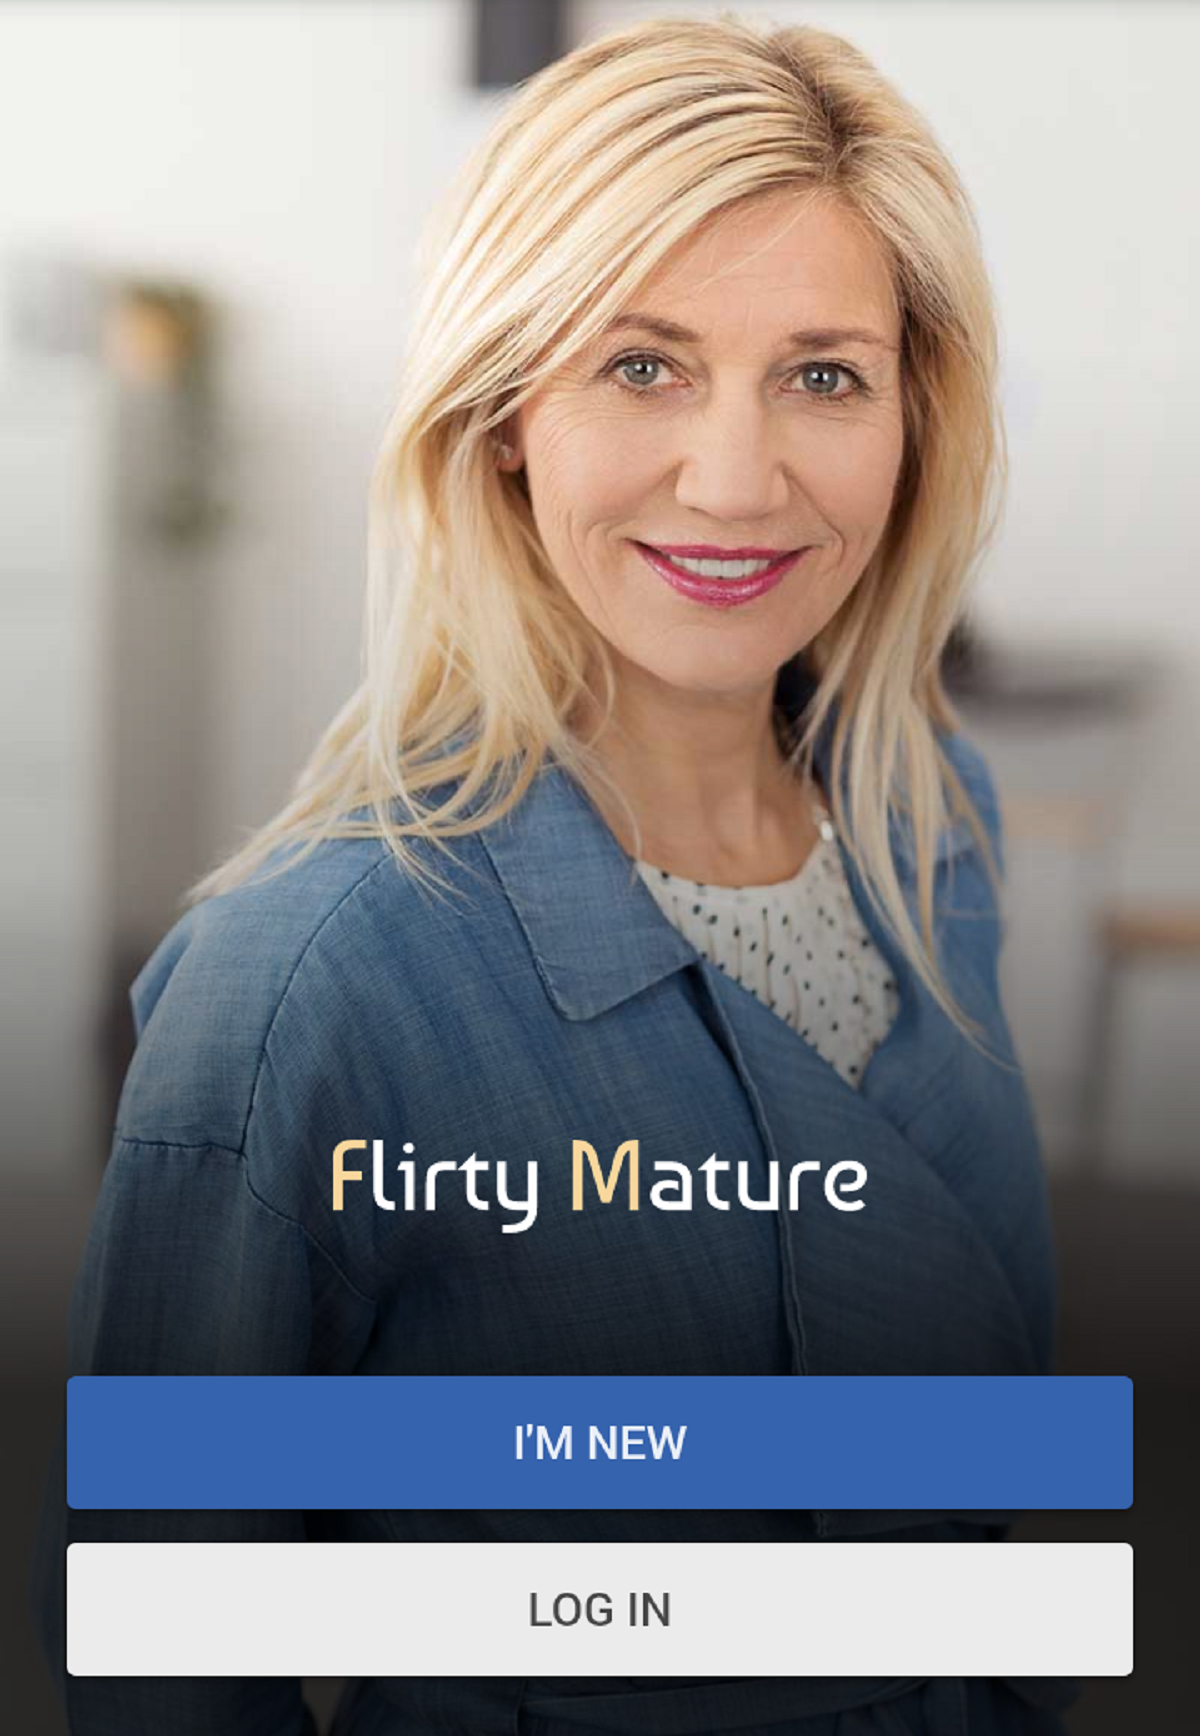 flirtymature mobile